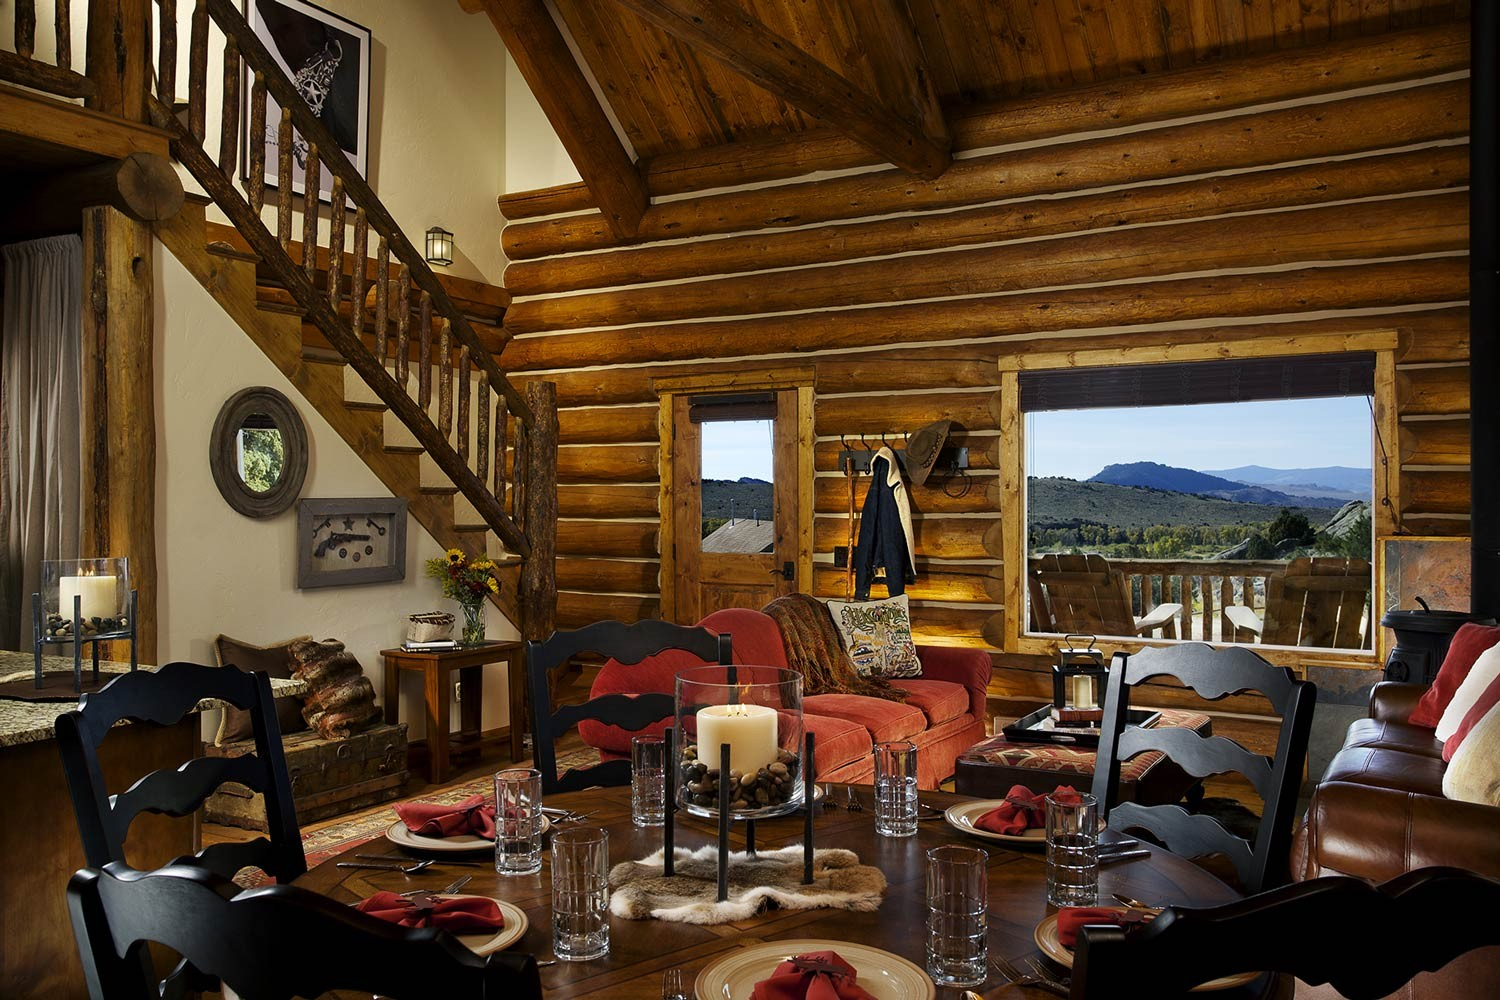 brush-creek-ranch-grandview-deluxe-cabin-residence_1463430589_0